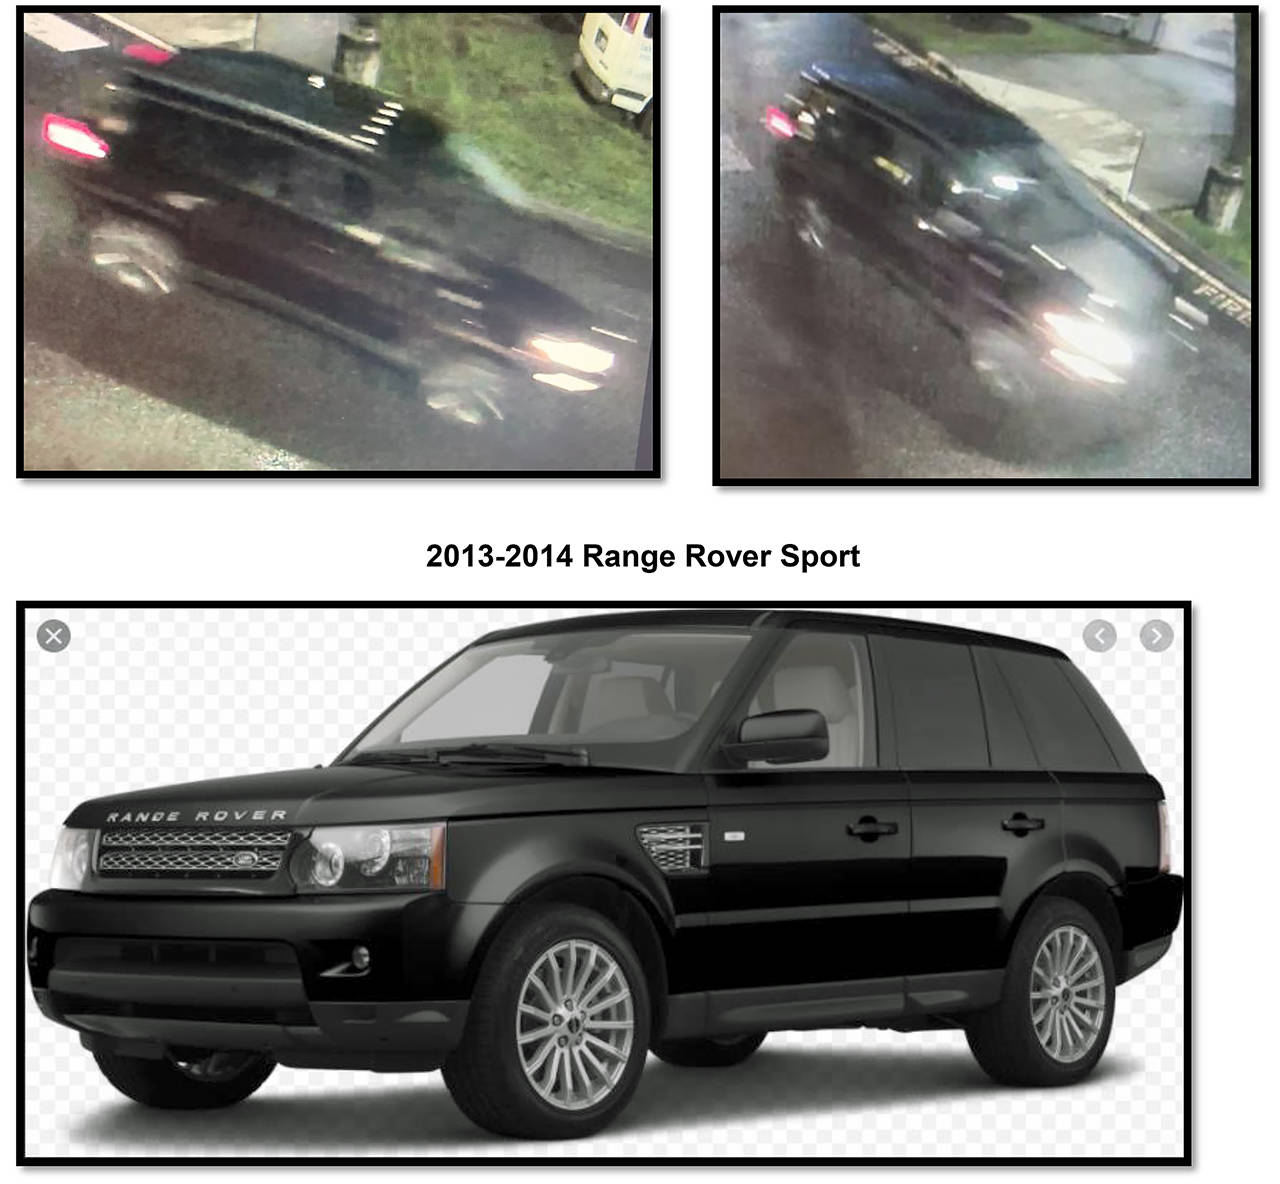 Arlington police believe a suspect fled in this Range Rover (top photos) after a deadly shooting outside a dialysis center Saturday on Smokey Point Boulevard. The SUV was caught on a security camera. The lower image shows the make and model of the vehicle. (Arlington Police Department)